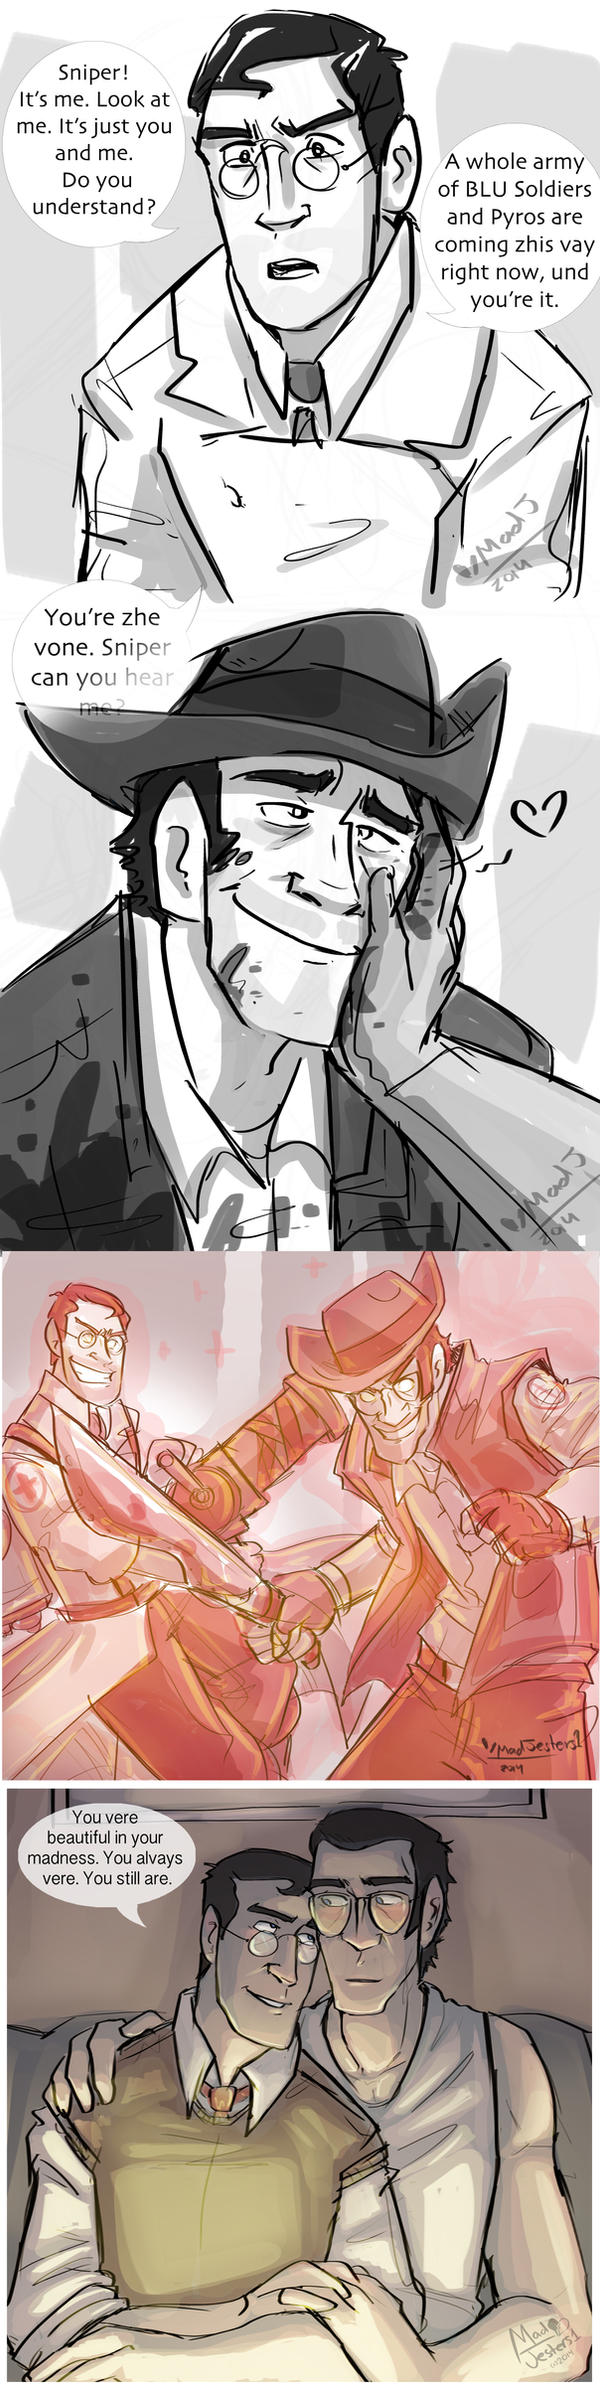 Tf2 fanfiction medic